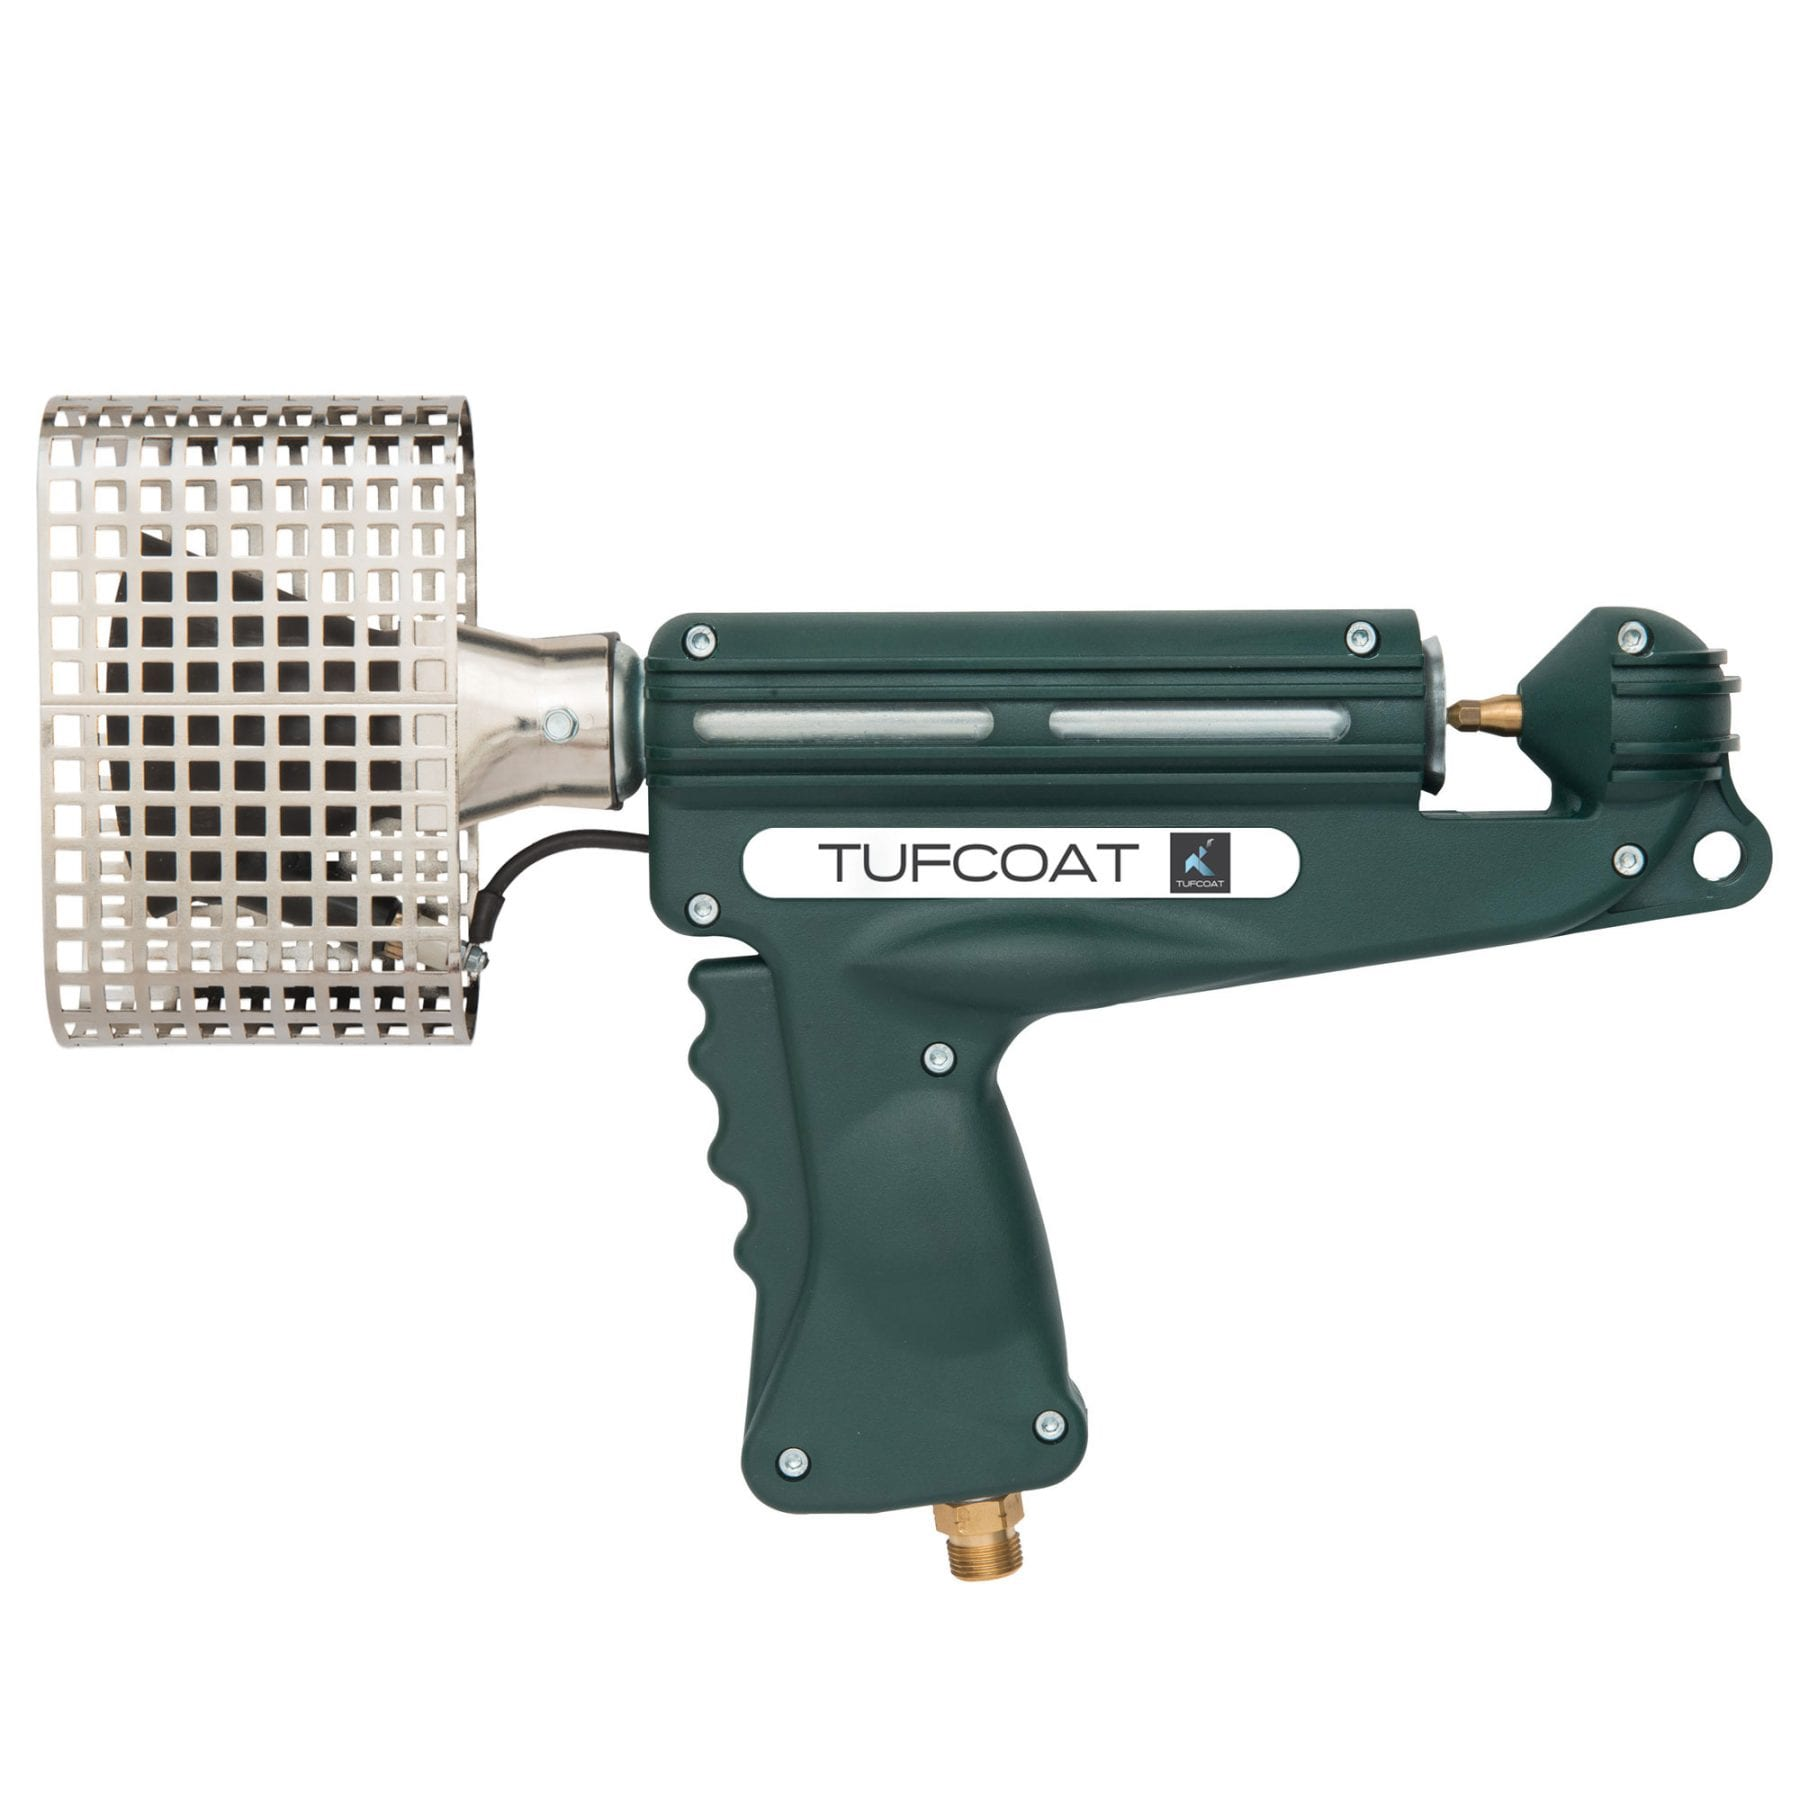 BC35 Tufcoat Shrink-wrap Propane gun